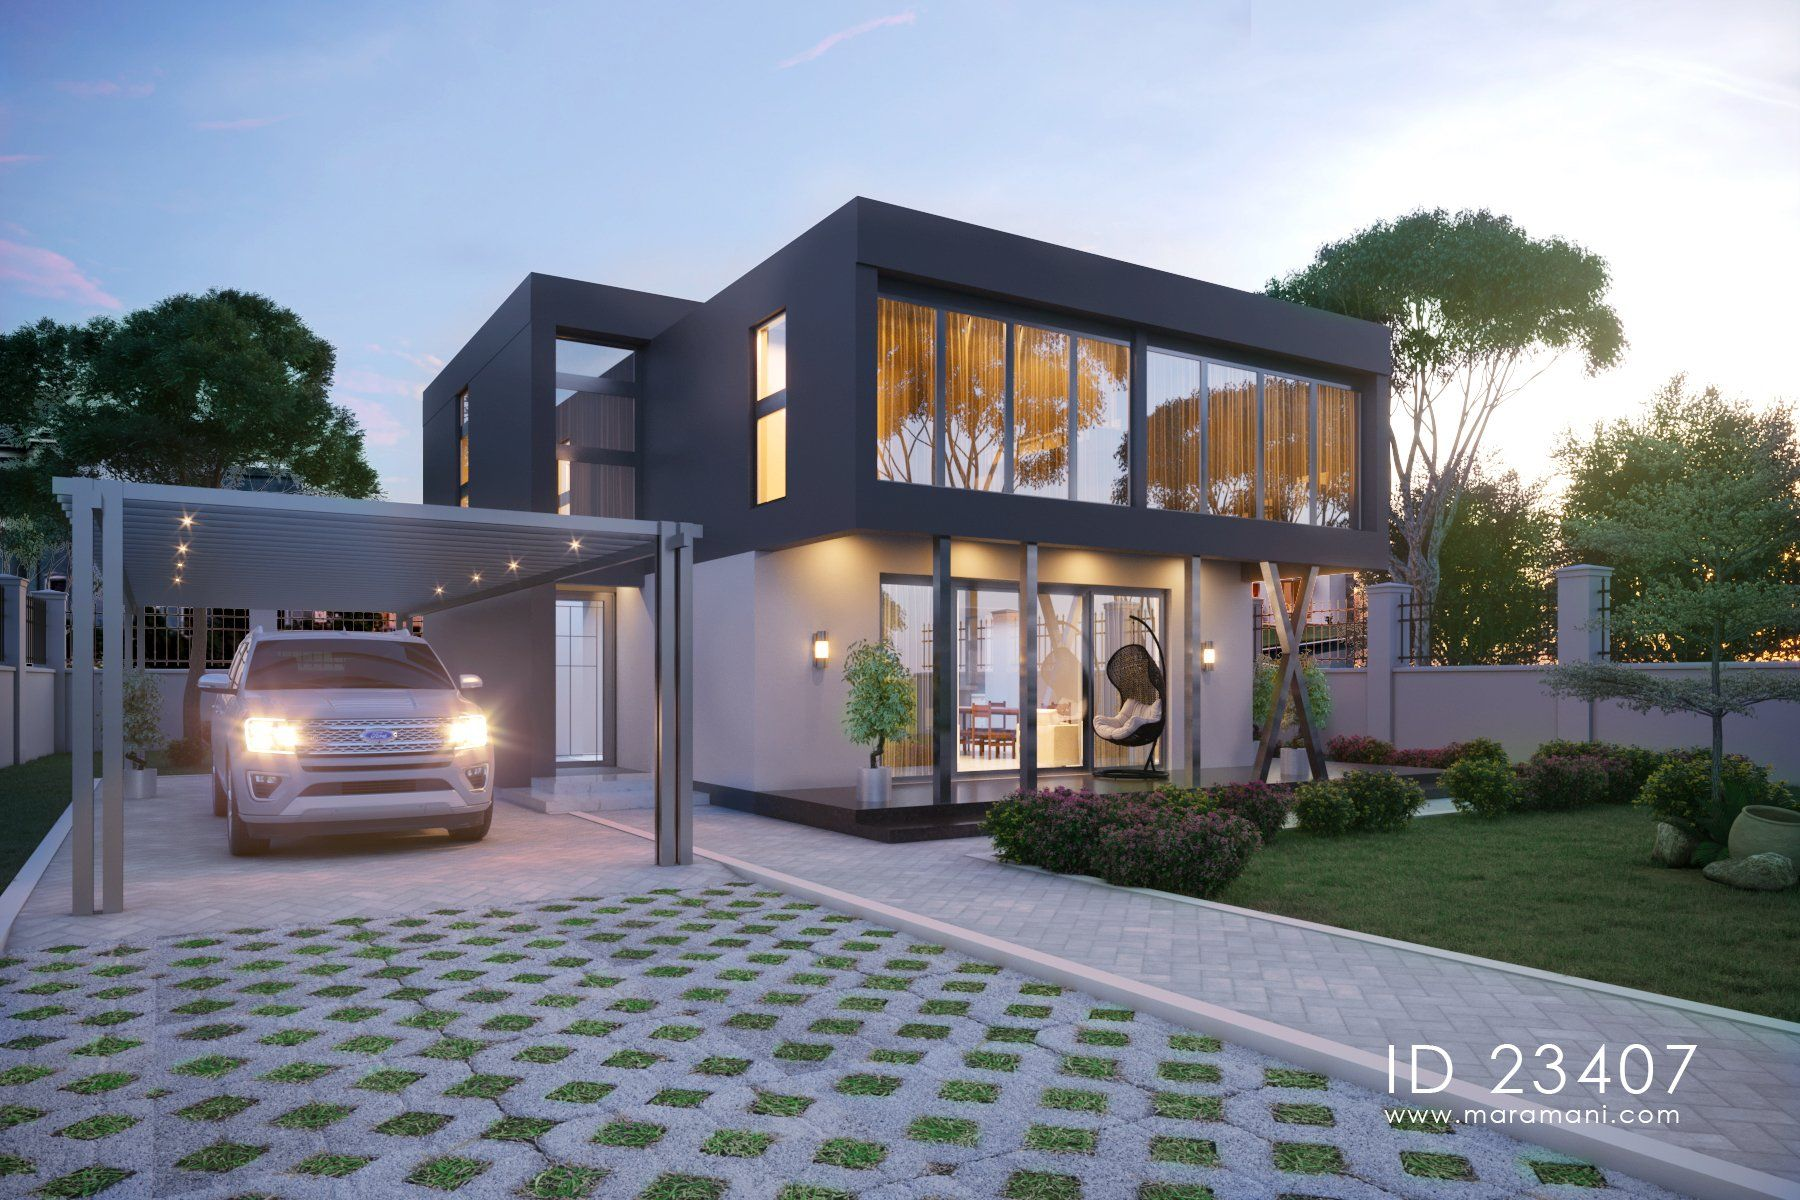 3 Bedroom Contemporary House Plan Id 23407 House Designs By Maramani